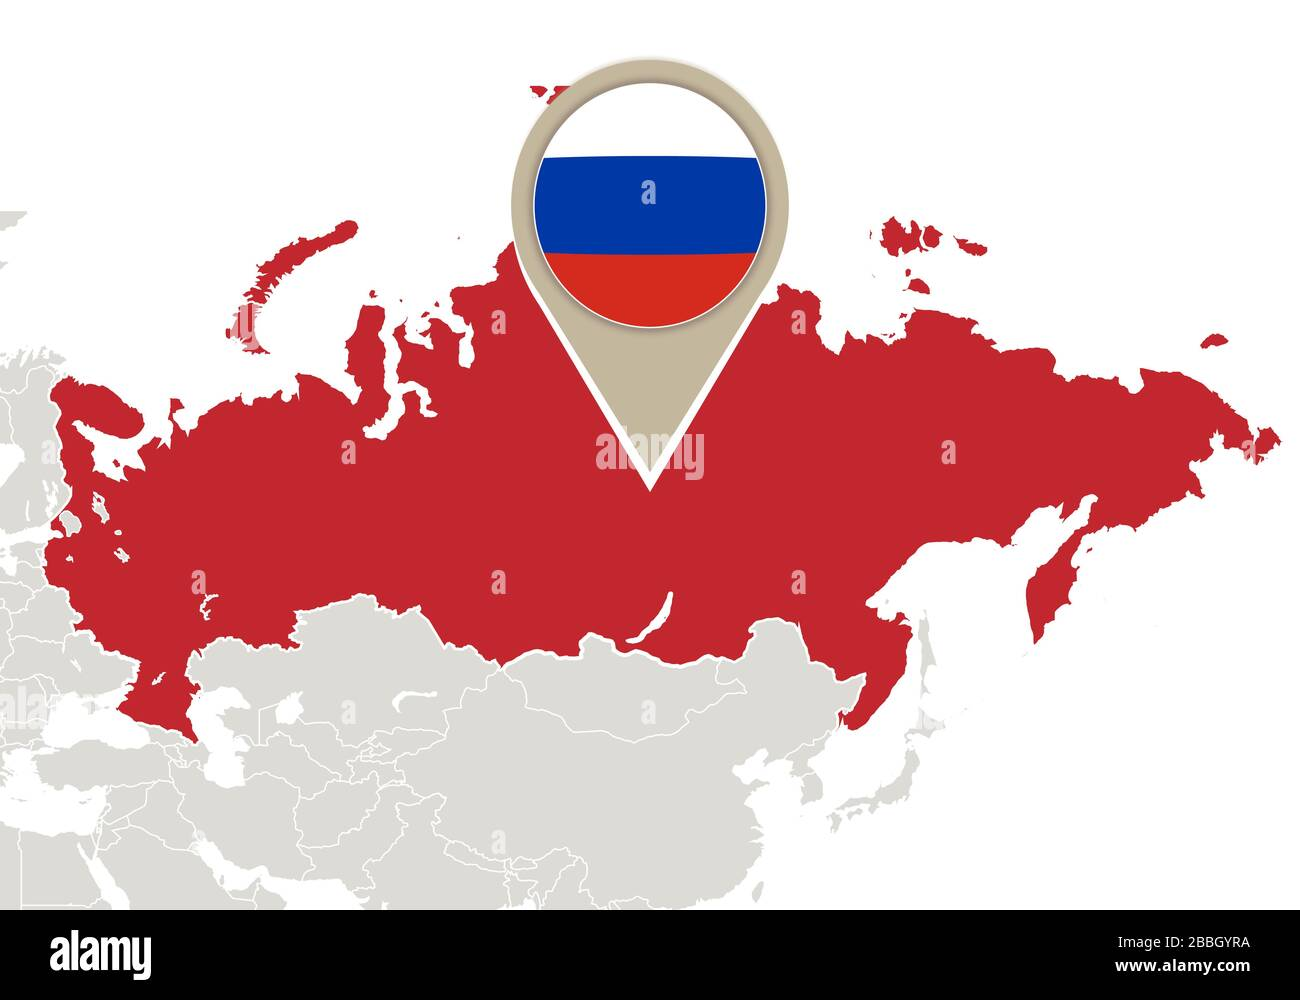 Sochi Russia Cartina.Page 3 Russia Flag Circle High Resolution Stock Photography And Images Alamy